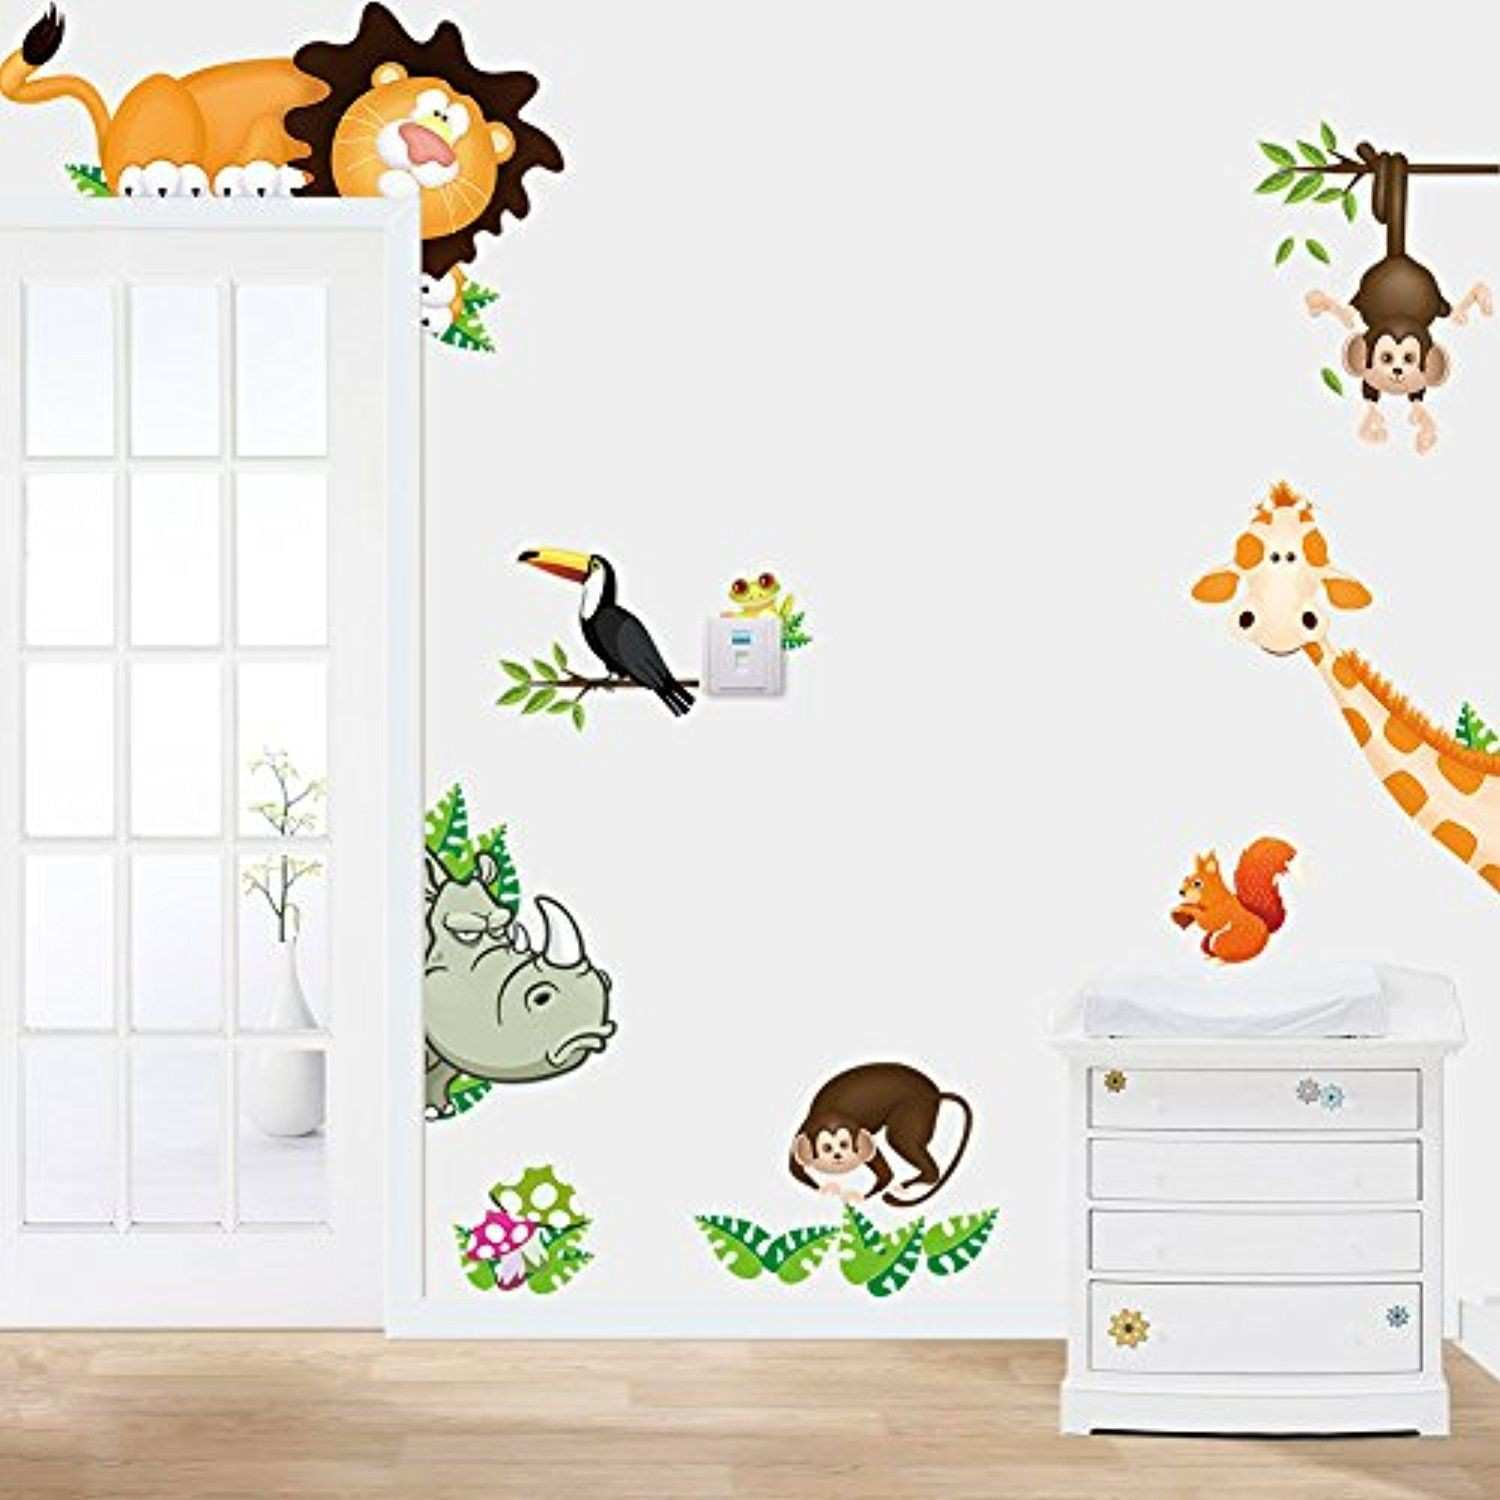 Marvides Wall Stickers for Kids Room Backdrop Stickers Kindergarten